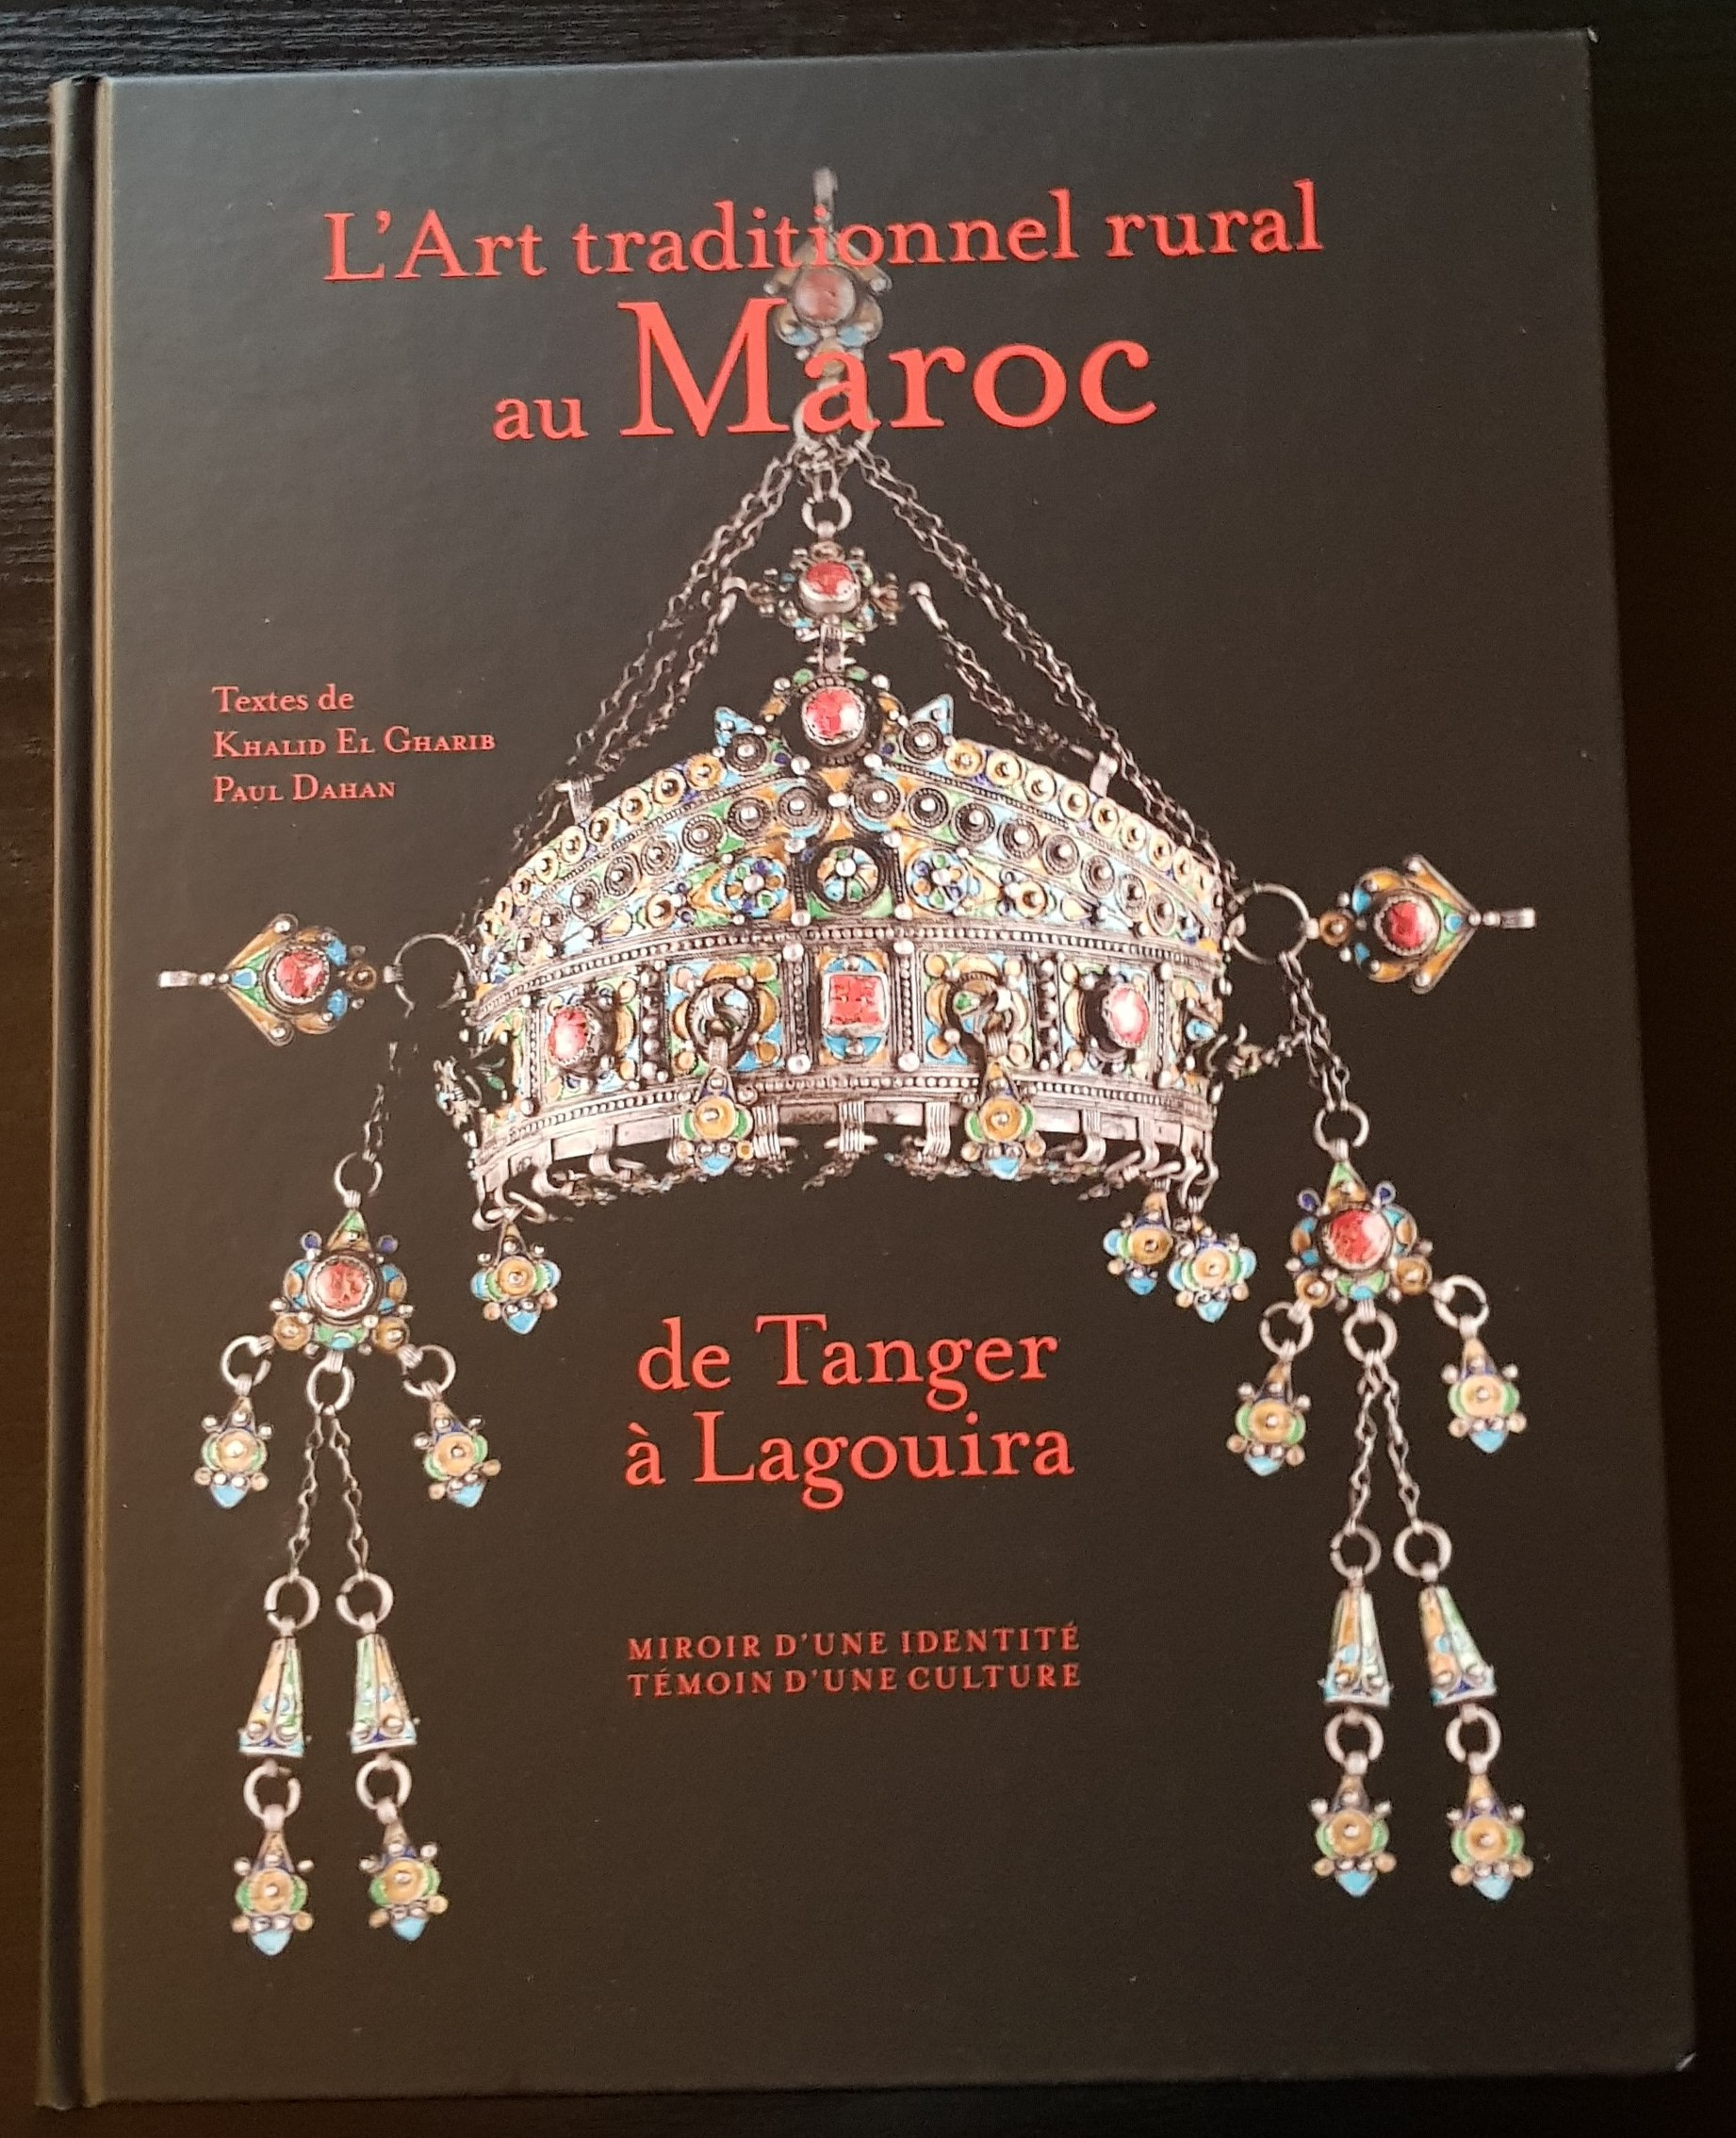 L'ART TRADITIONNEL AU MAROC DE TANGER A LAGOUIRA